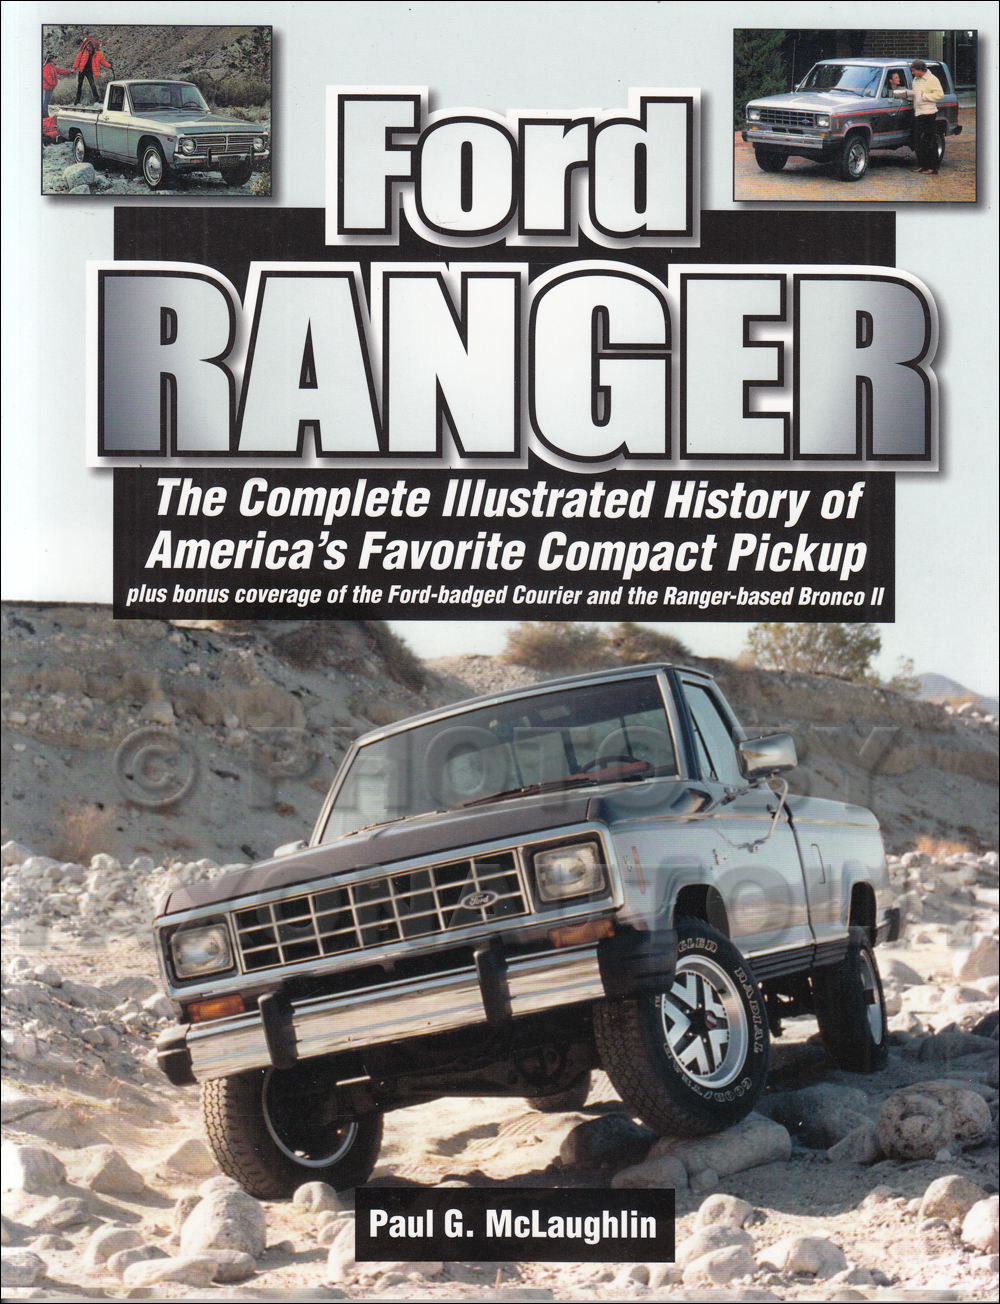 History of the Ford Ranger and Bronco II